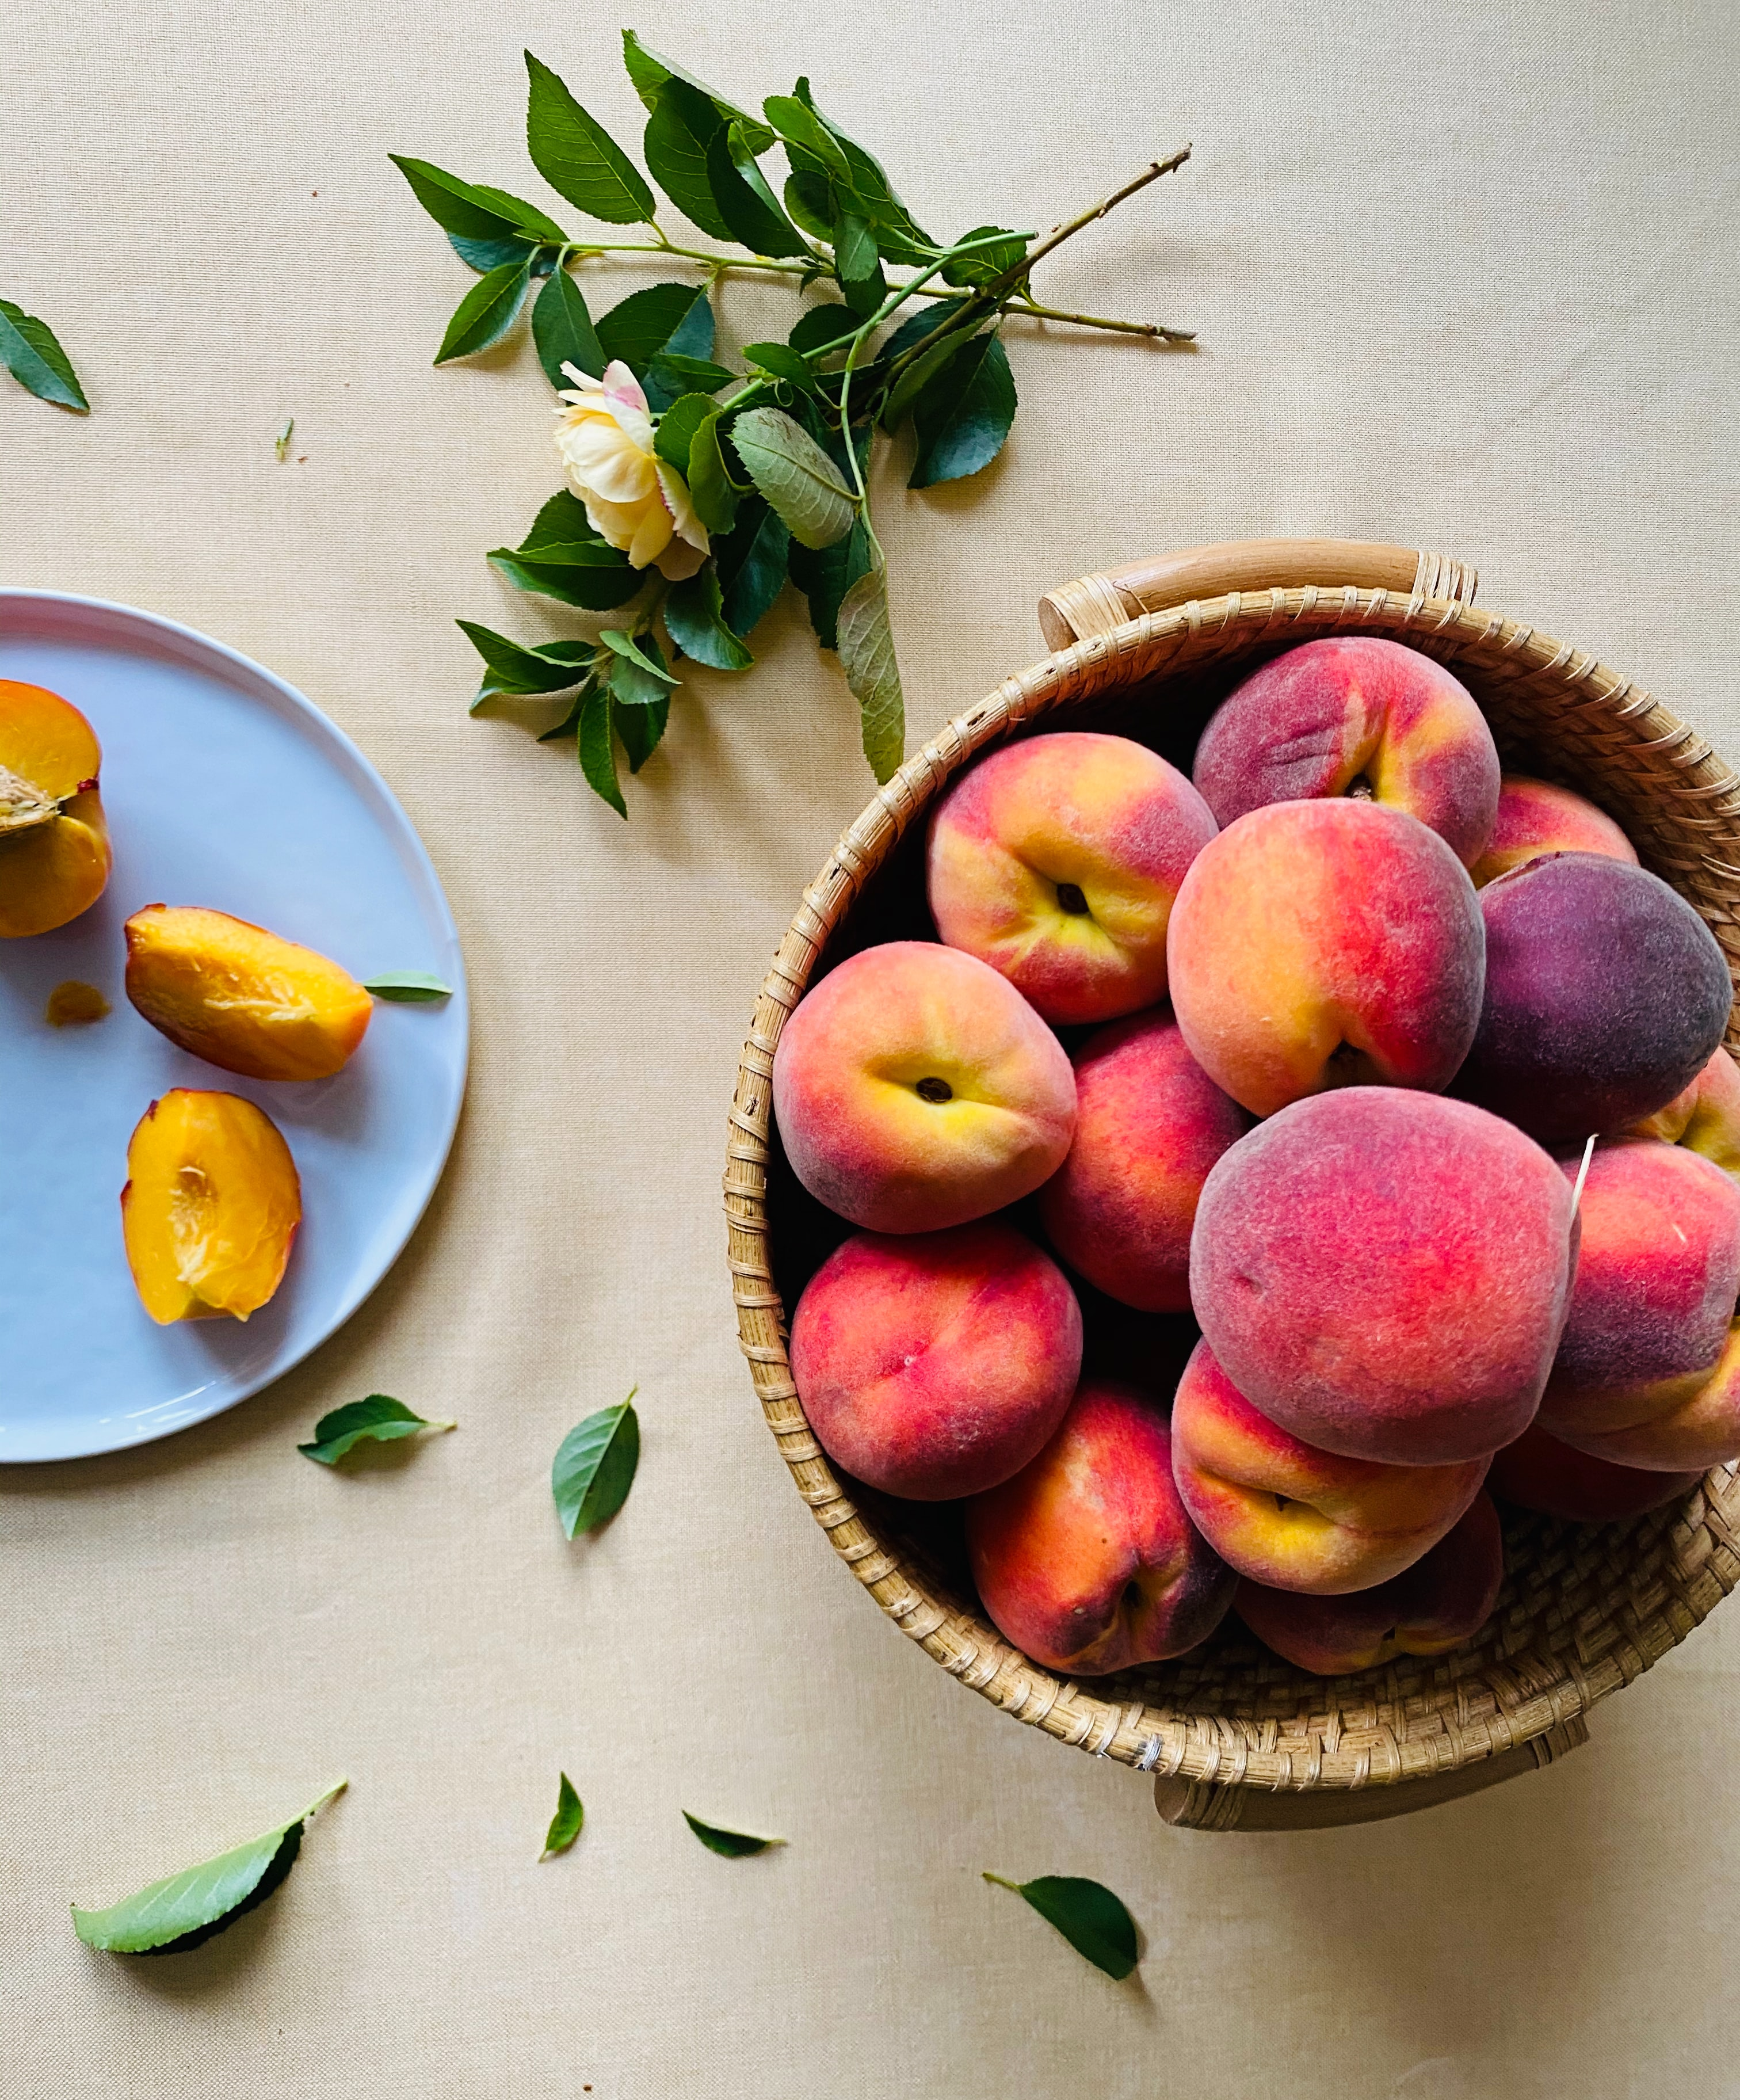 68182 download wallpaper Fruits, Food, Peaches, Rose Flower, Rose, Cloth, Lobules, Slices screensavers and pictures for free